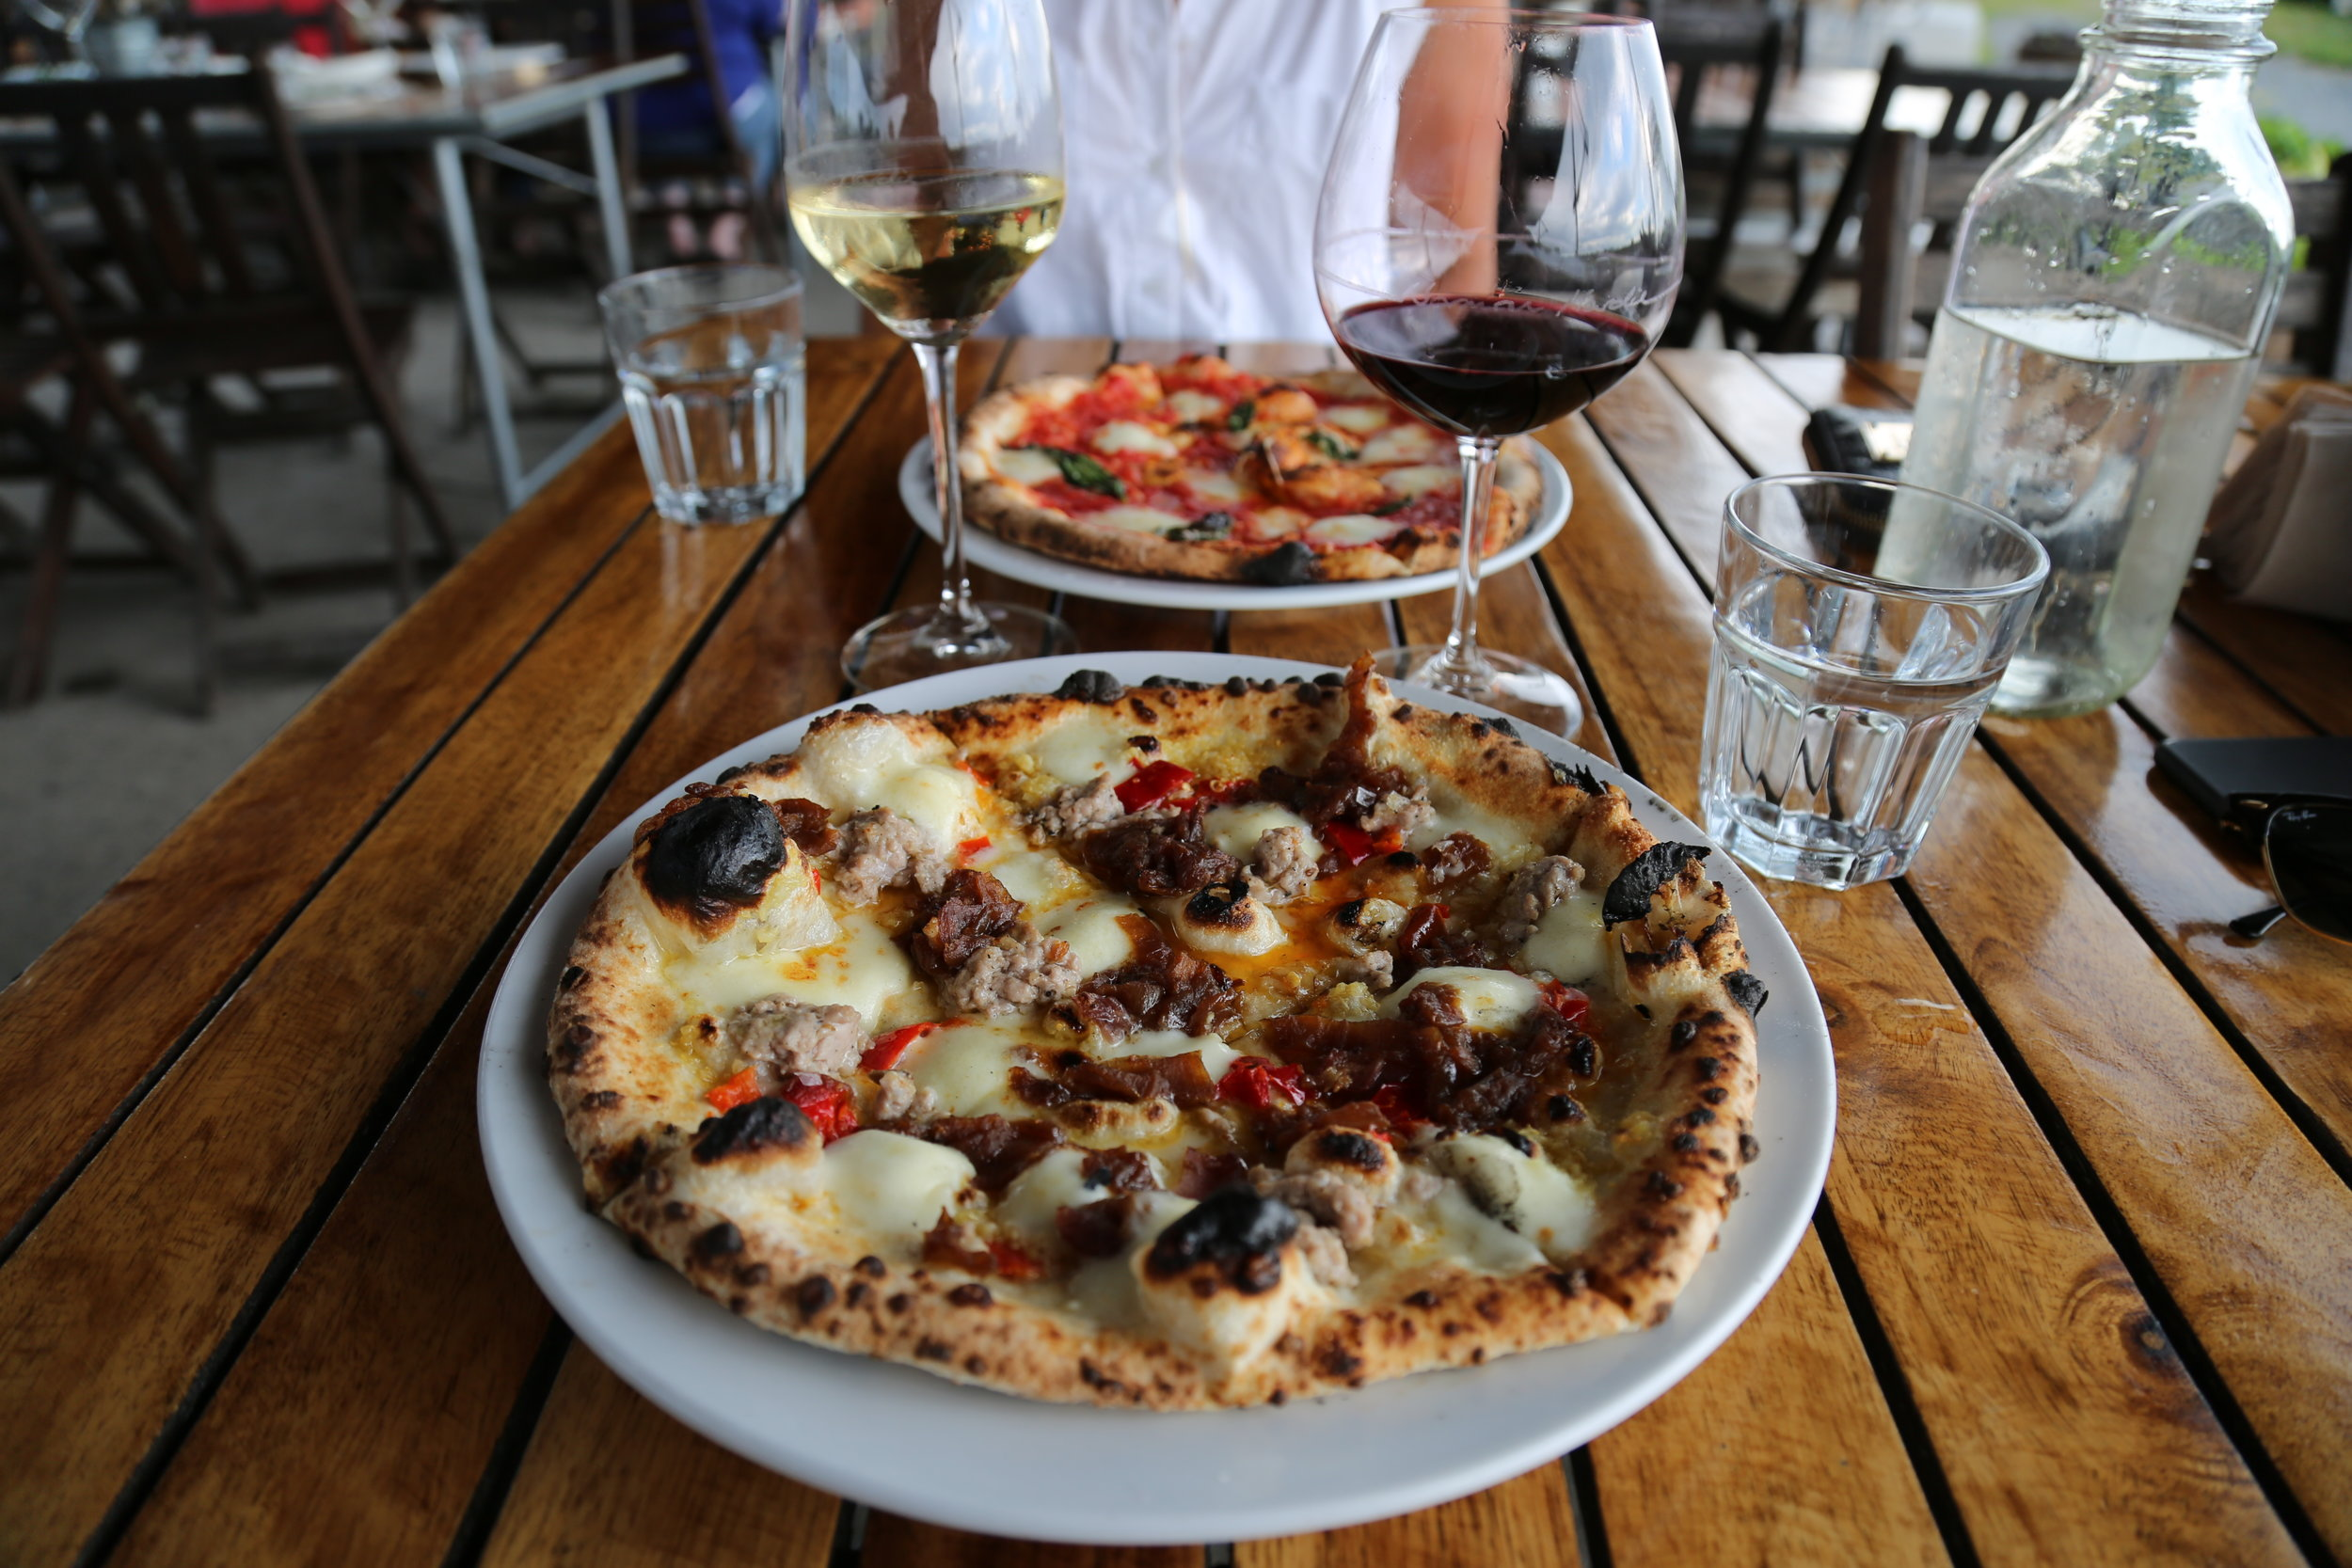 ~Wine Tasting and Pizza in Prince Edward County at Norman Hardie Vineyards~